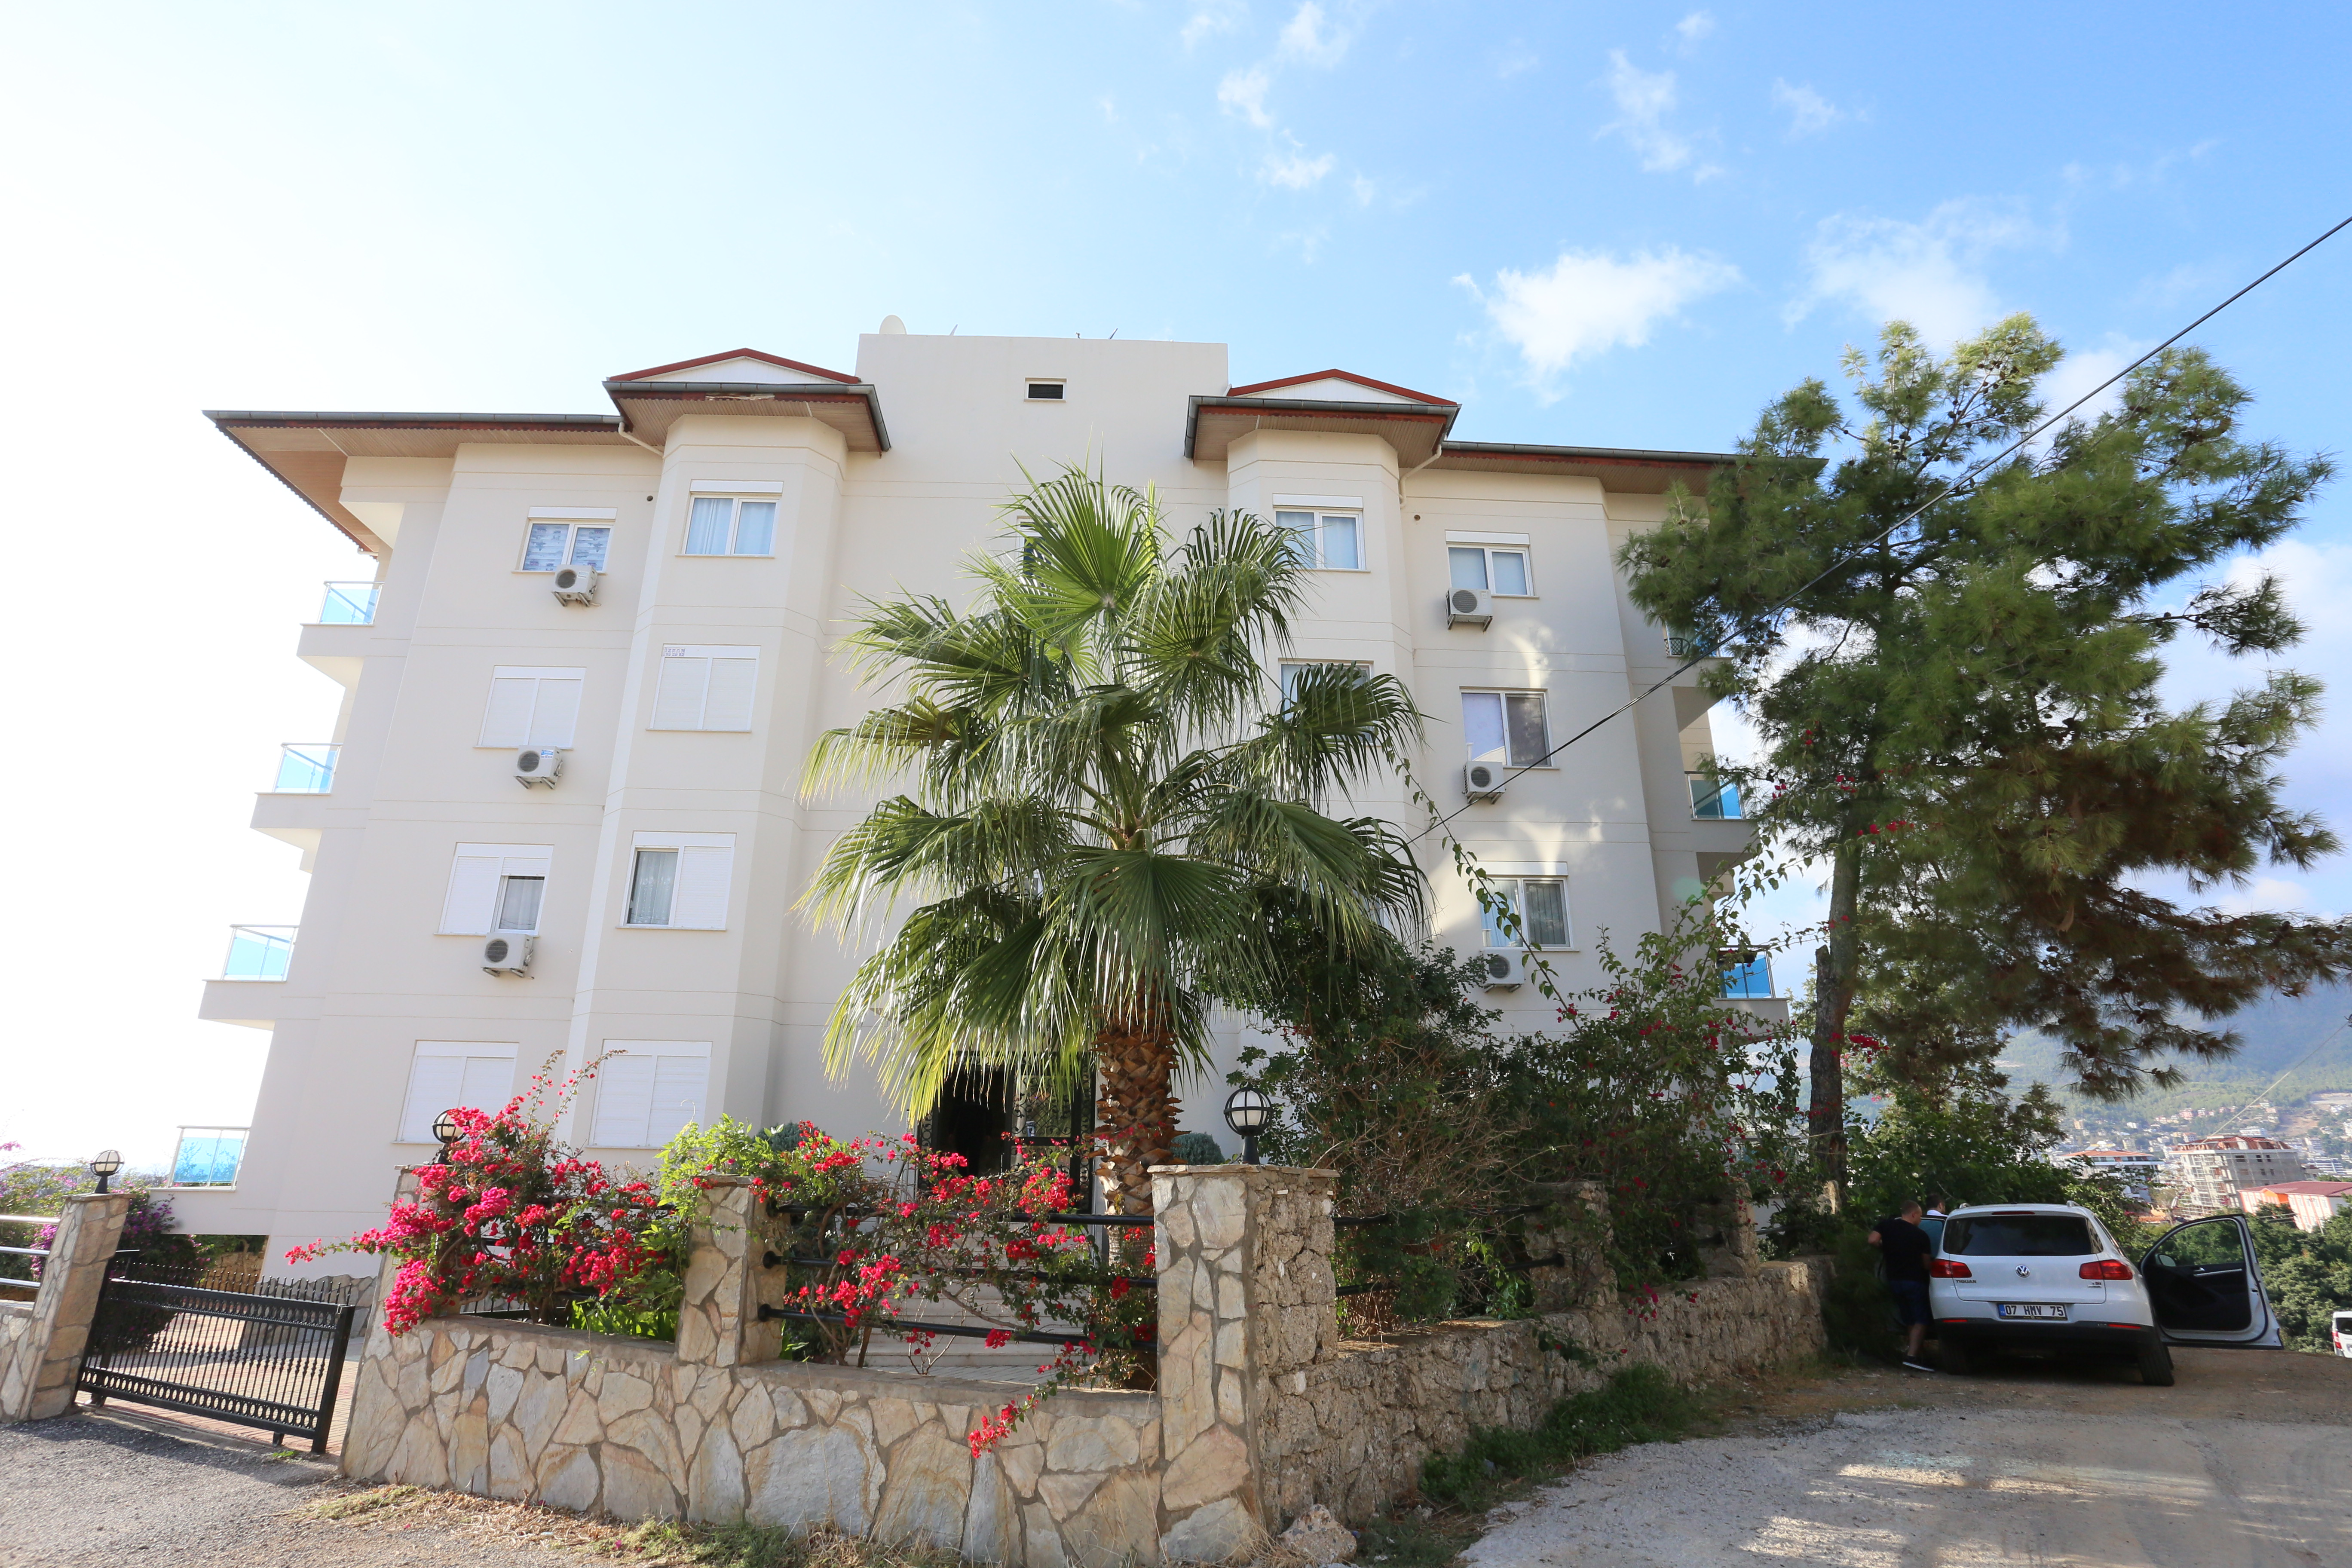 Apartment 2+1 overlooking the Alanya fortress in Oba